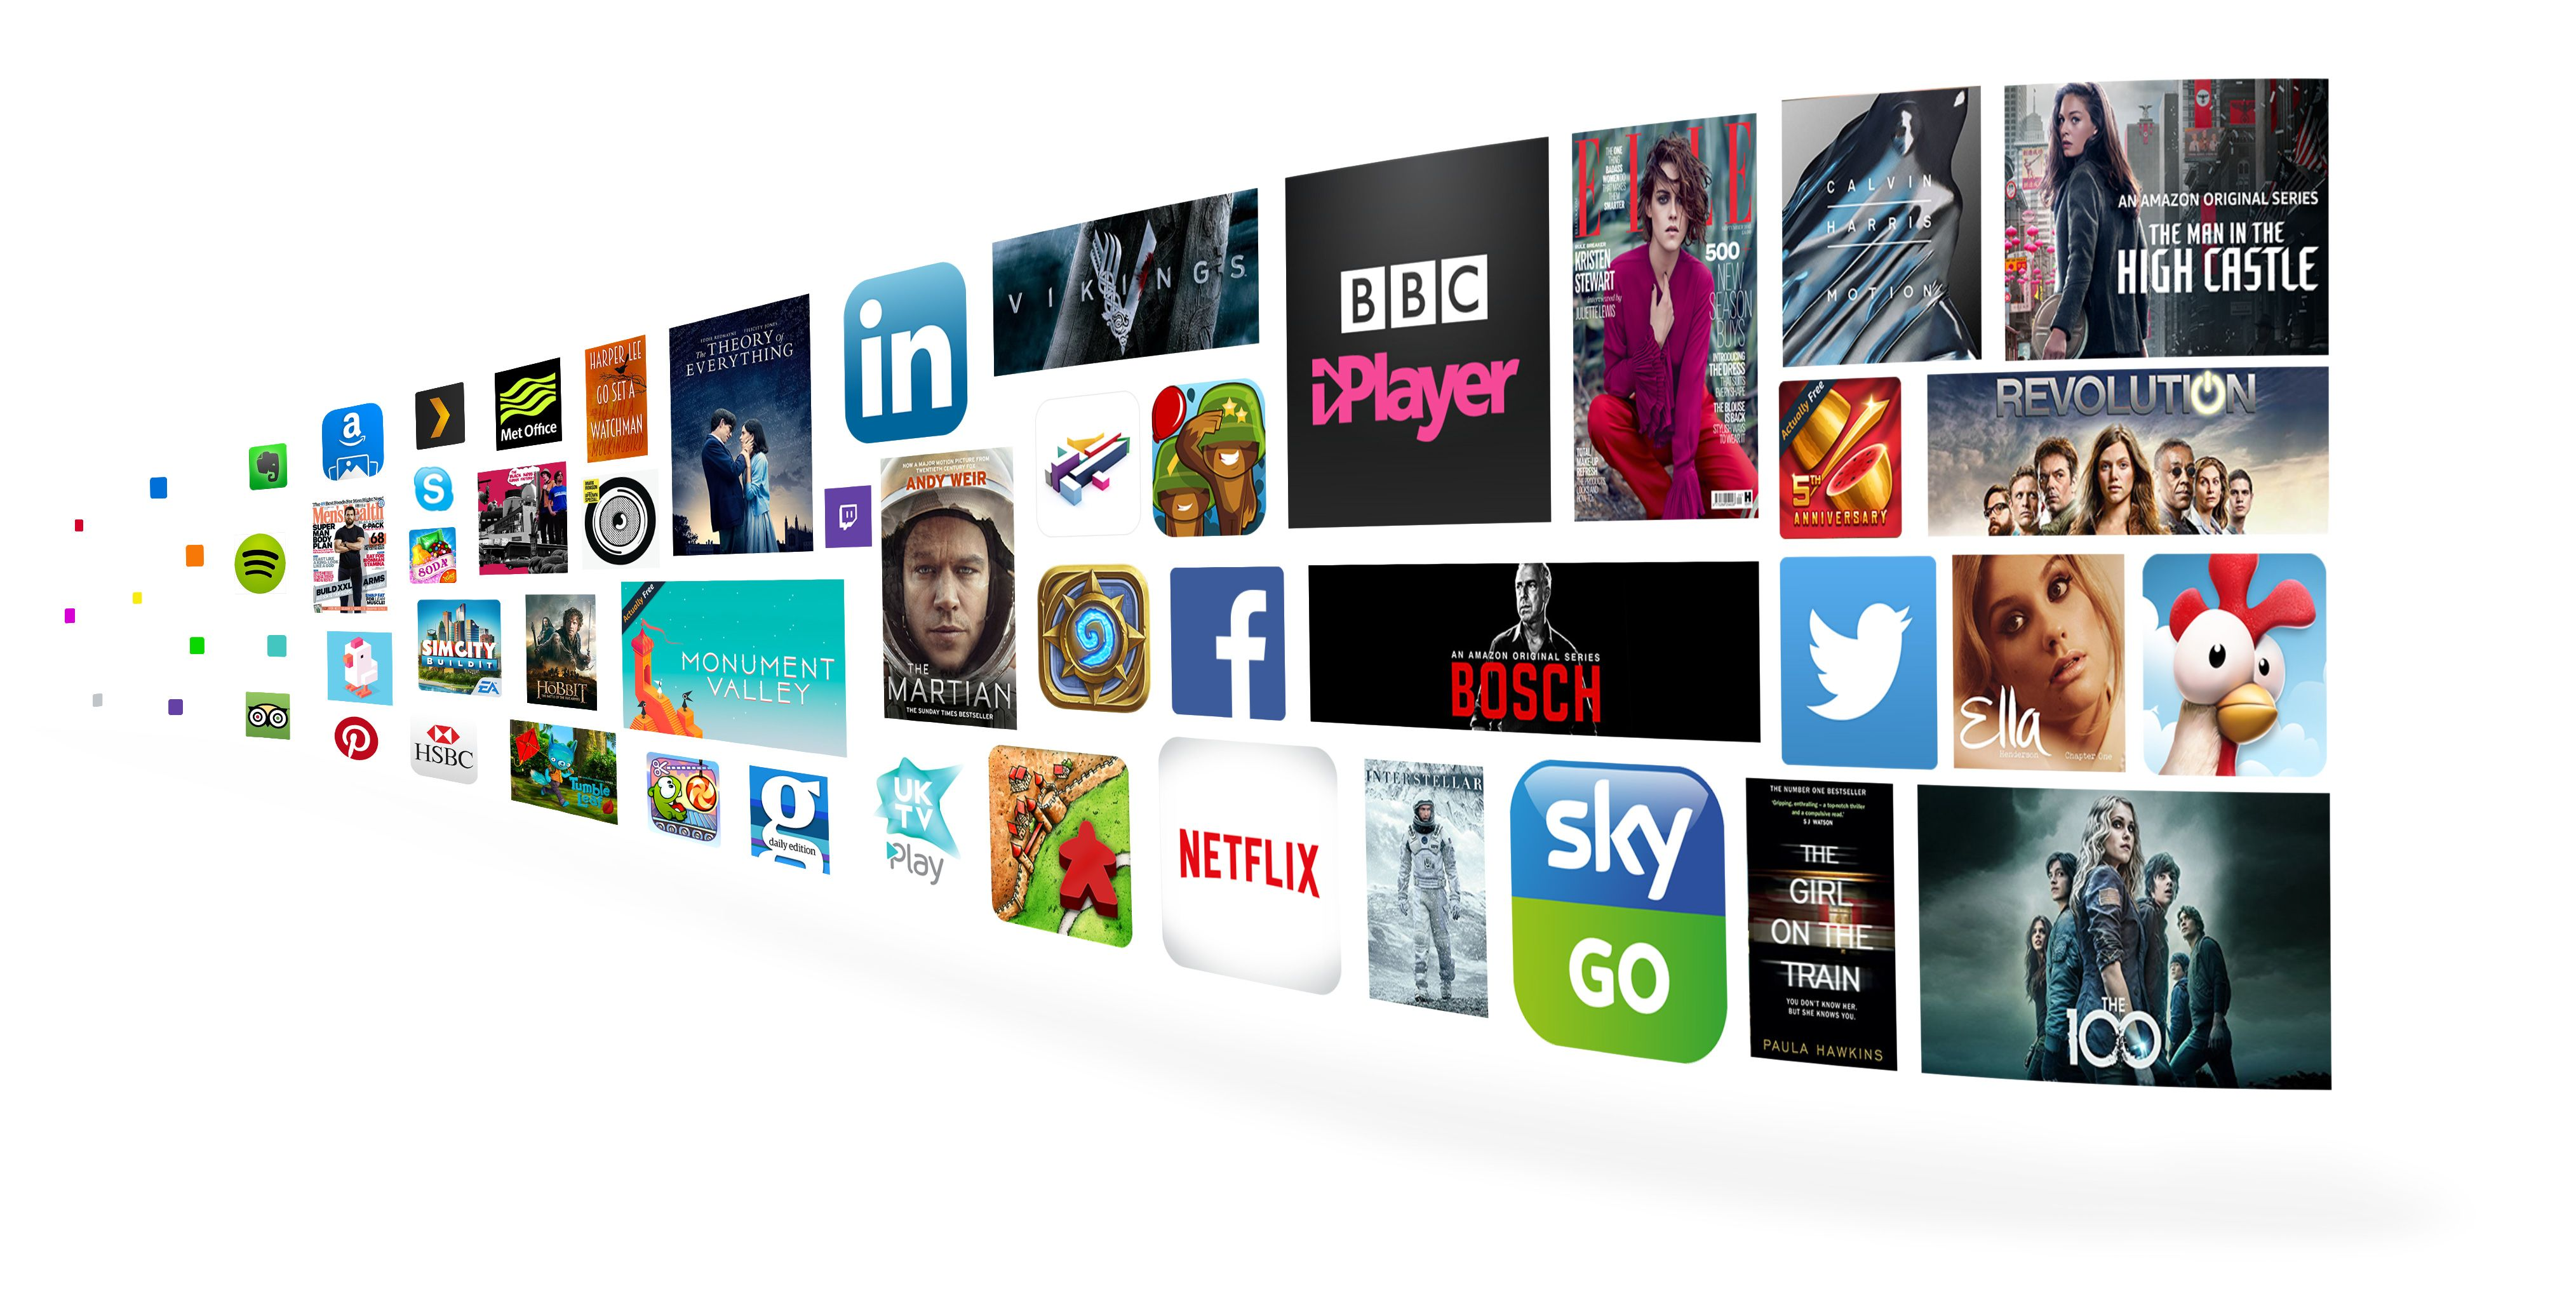 App Wall (With images) Fire hd 10, Sky go, Display